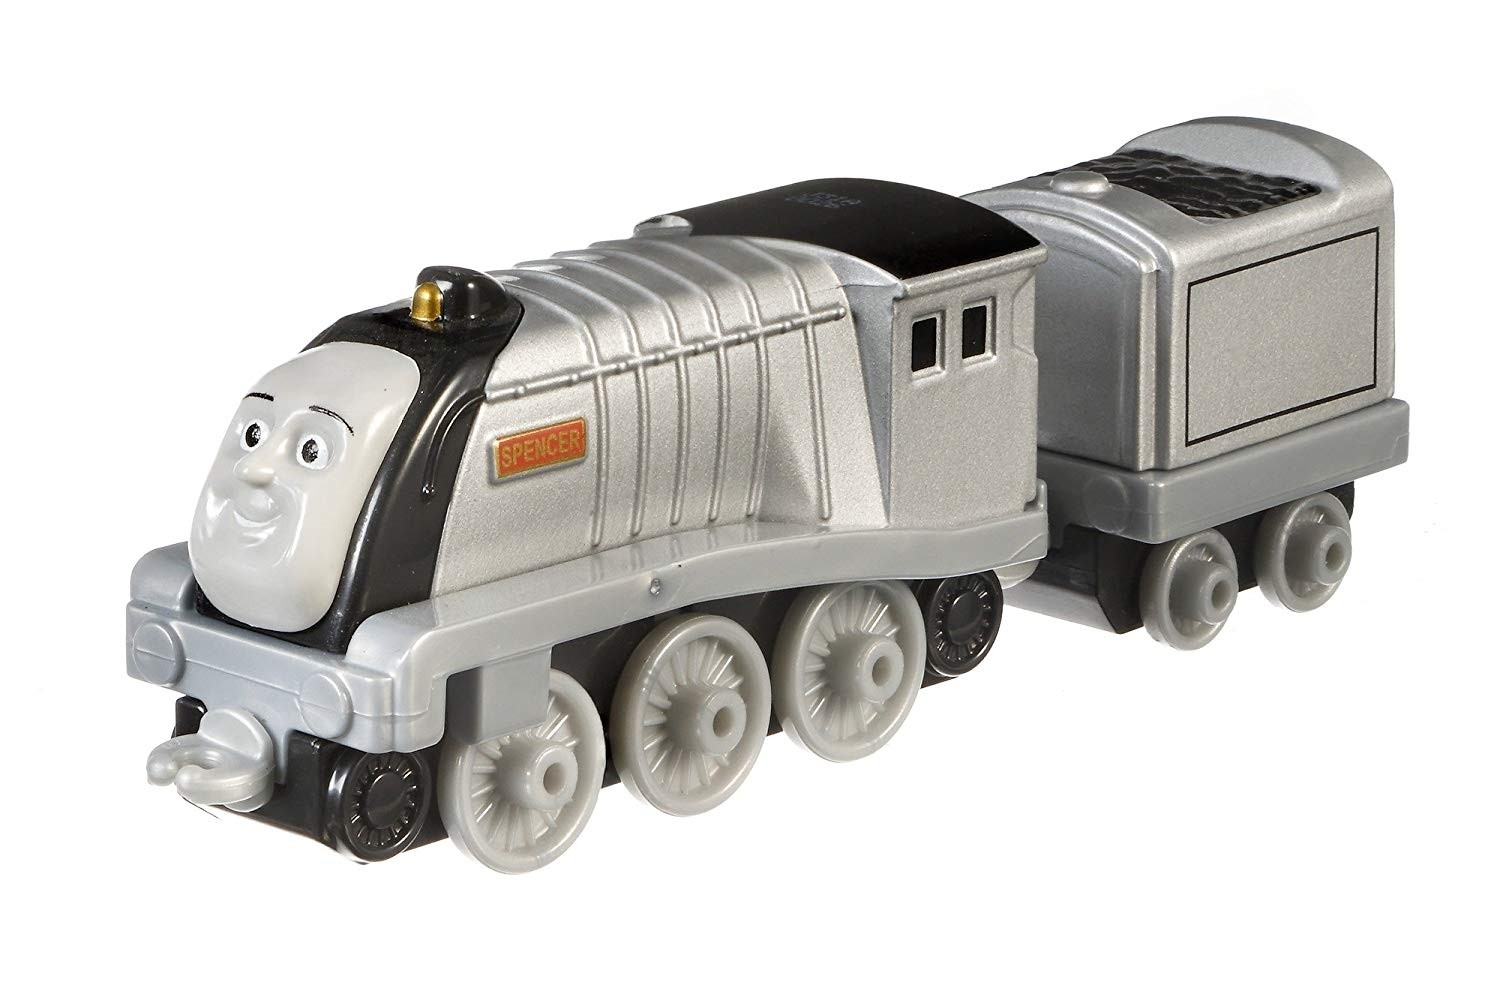 Thomas & Friends DXR69 Spencer, Thomas the Tank Engine Adventures Toy Engine, Diecast Metal Toy Train, 3 Year Old